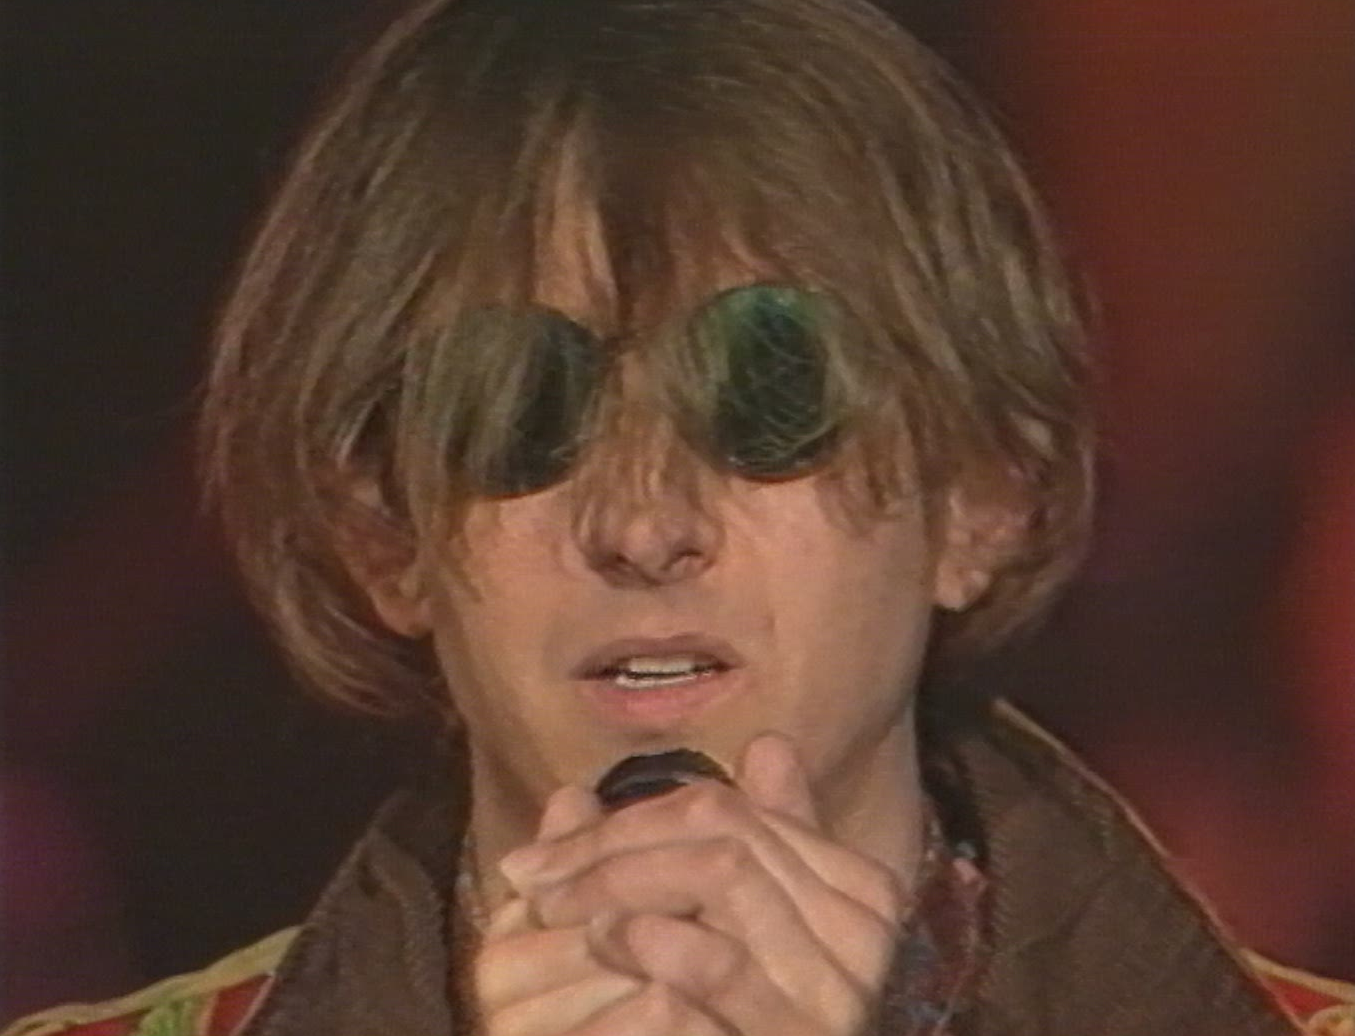 Mark Hollis du groupe Talk Talk en 1985 à Montreux.